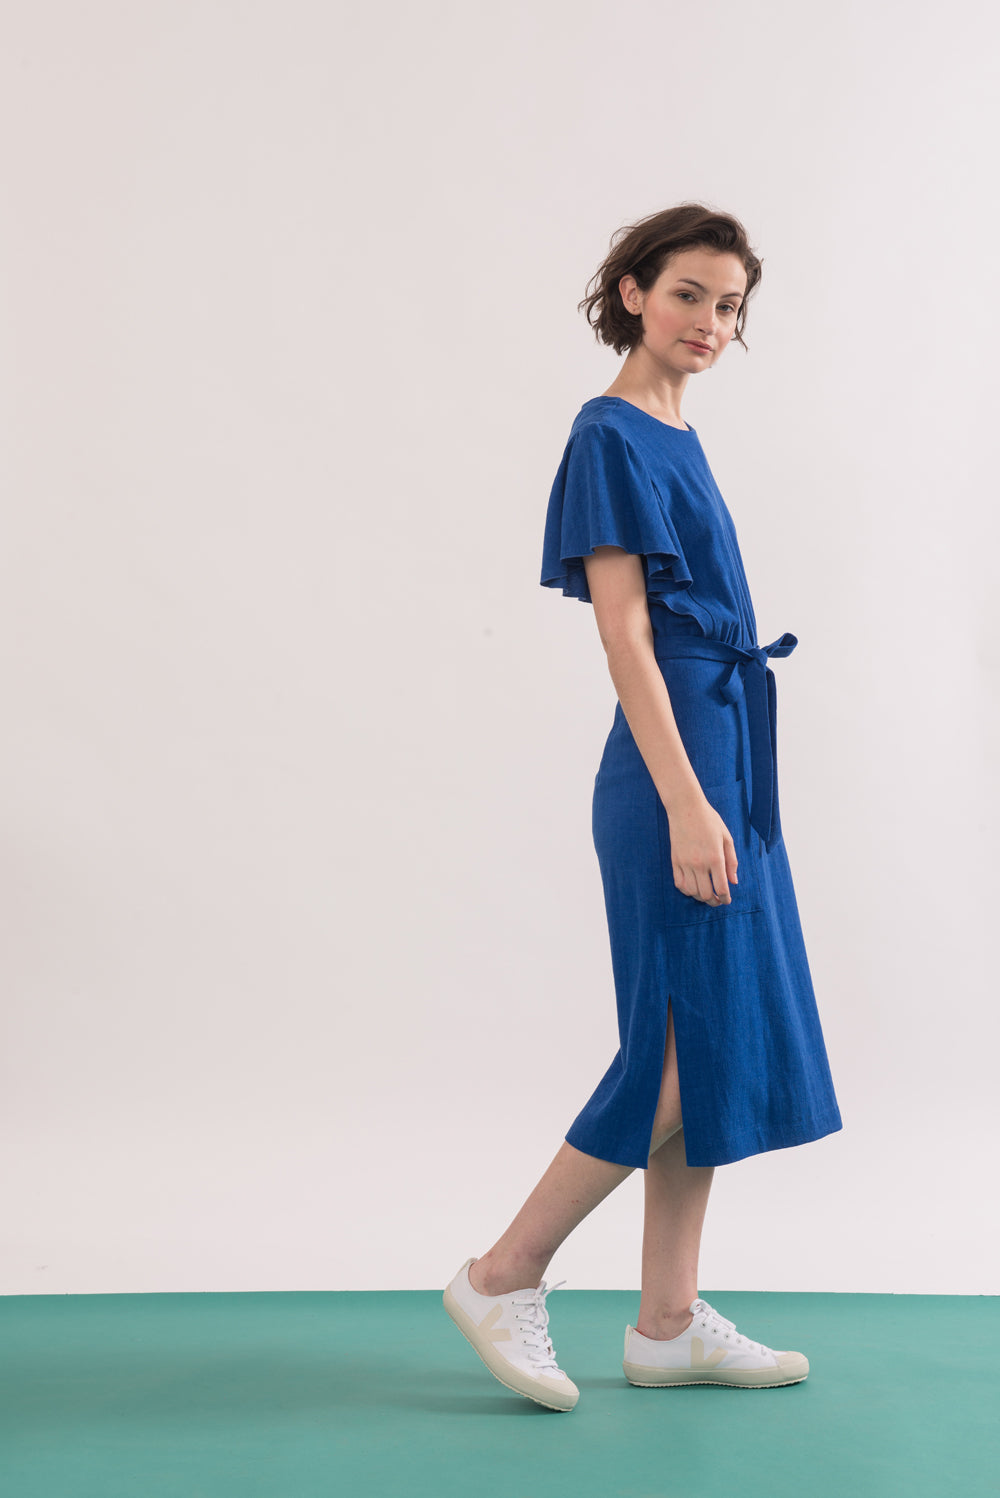 Klee Dress by Jennifer Glasgow, Electric Blue, side view, flowing draped sleeves, mid-length, patch pockets, side vents, belt, rayon and linen, sizes XS to XL, made in Montreal